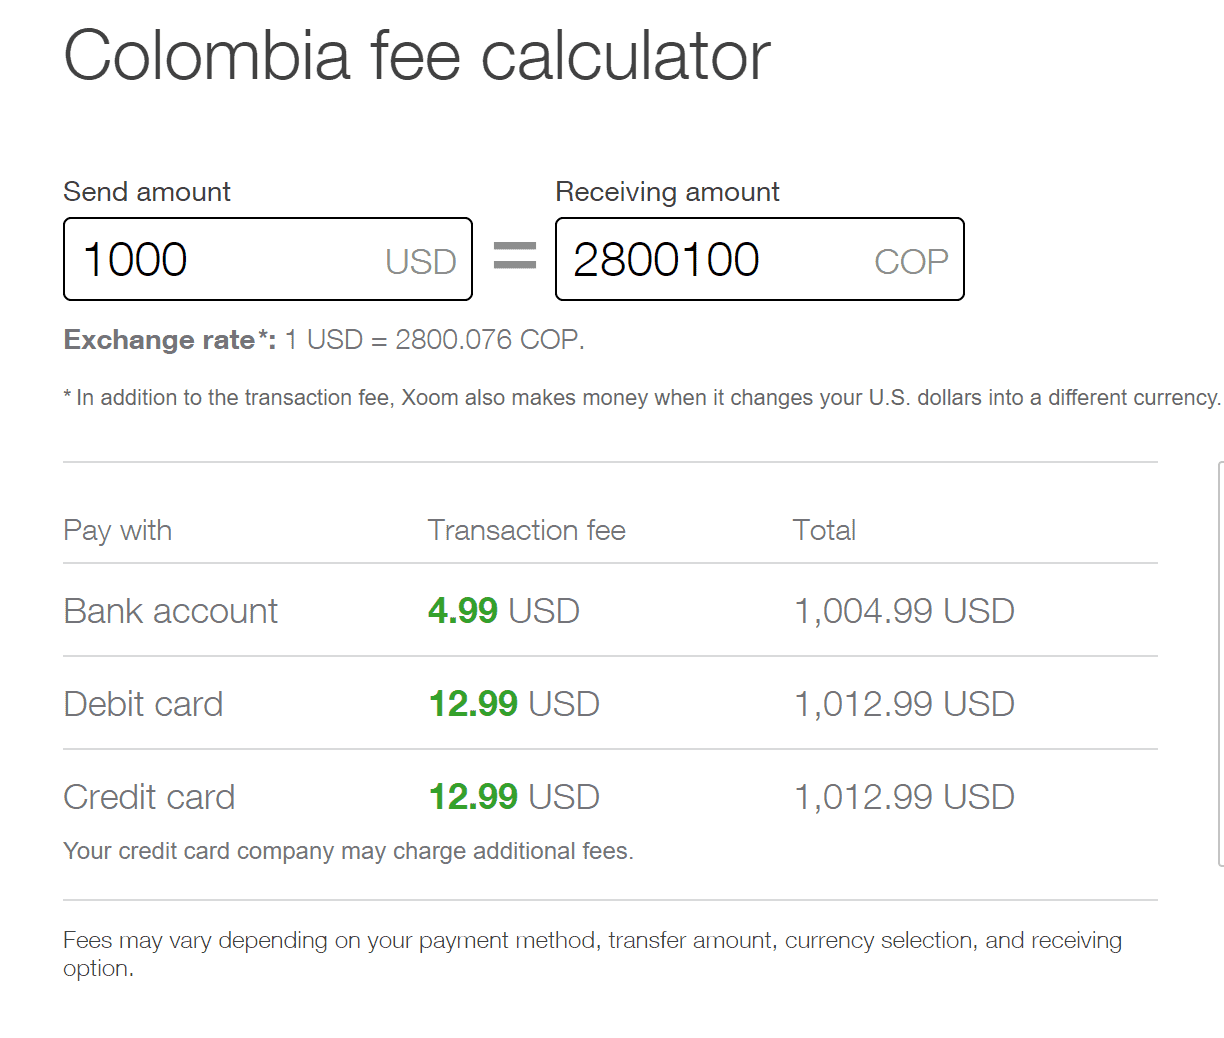 comparing rates for sending money to colombia using xoom